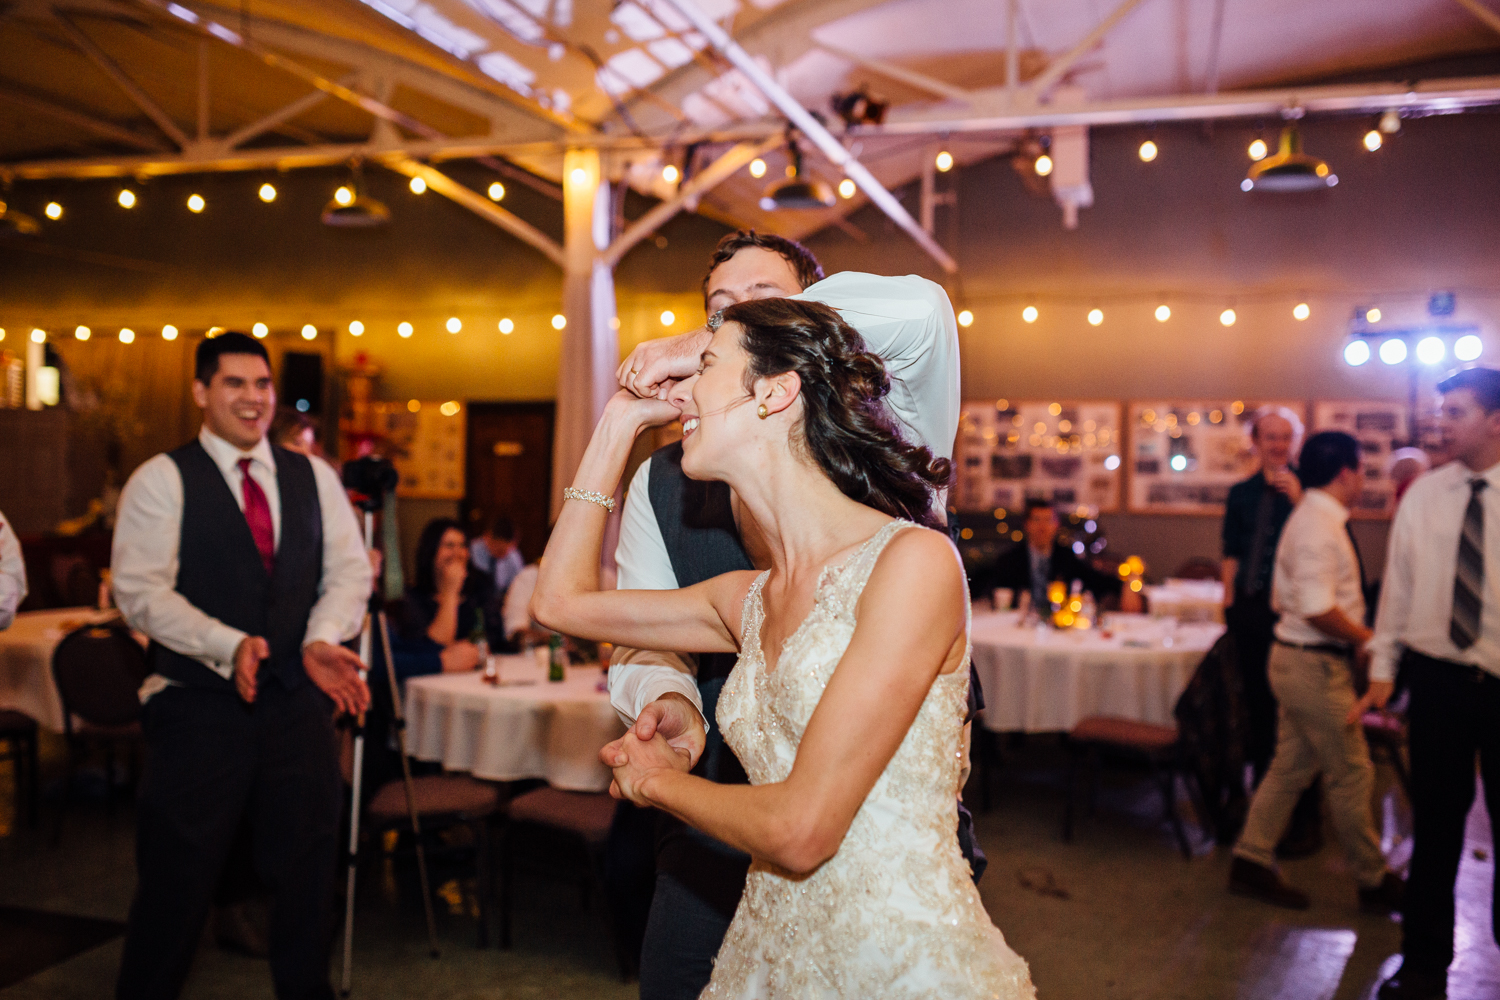 Fun, Intimate Spring Wedding by Corrie Mick Photography-128.jpg